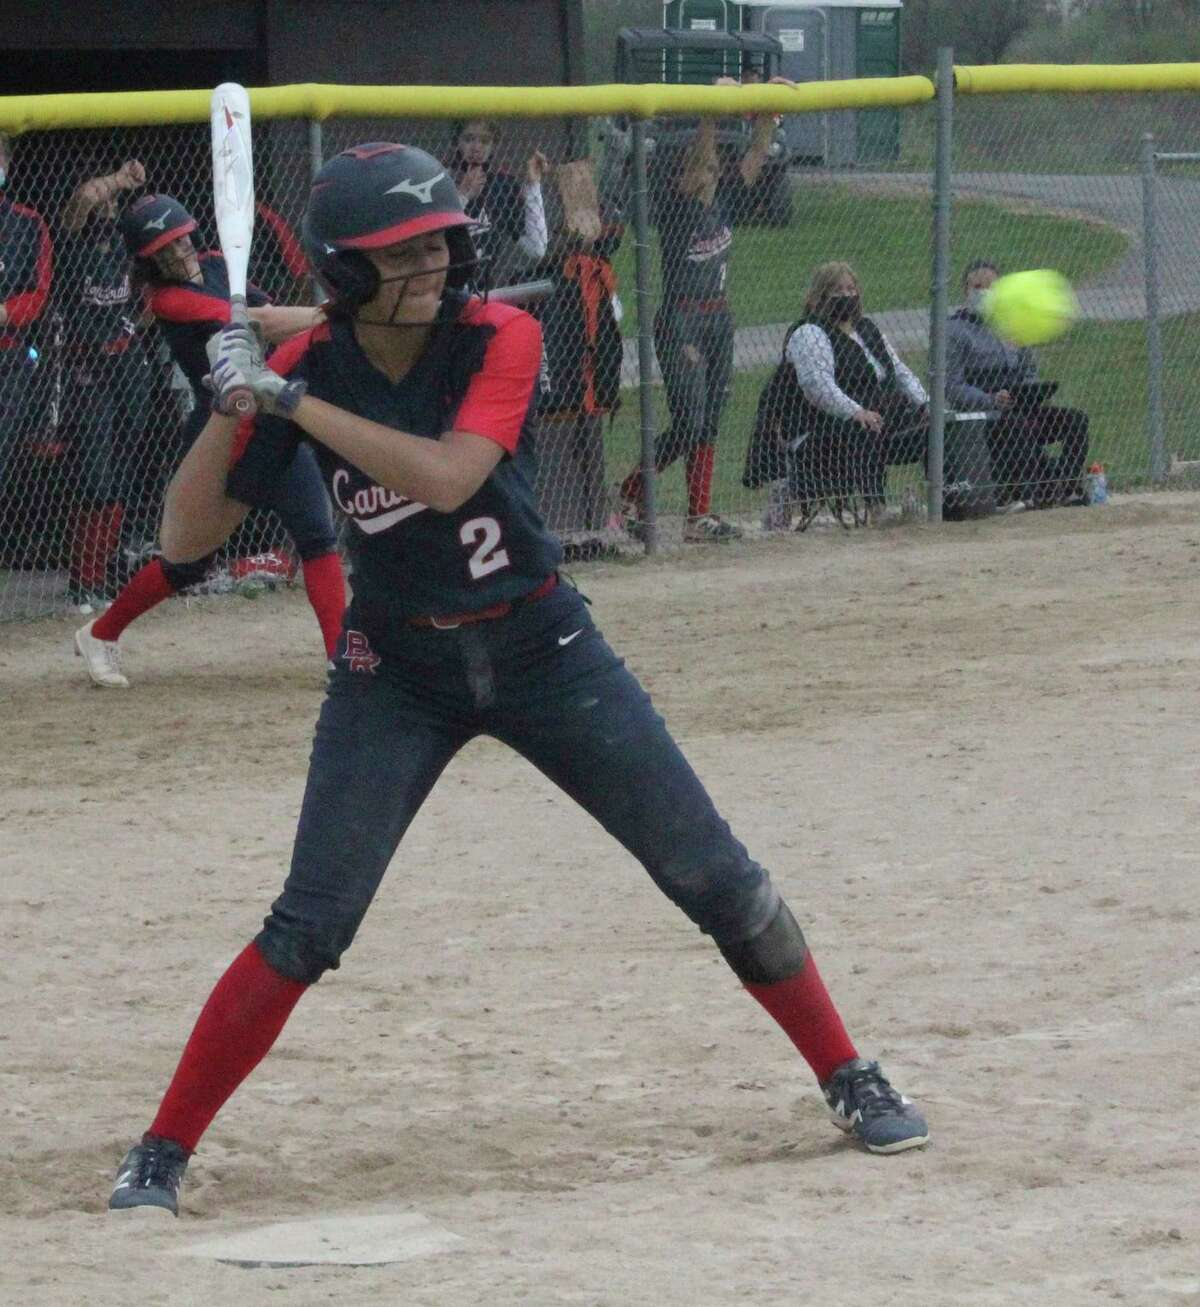 Big Rapids' Emma Daum takes a pitch in recent action. (Pioneer file photo)